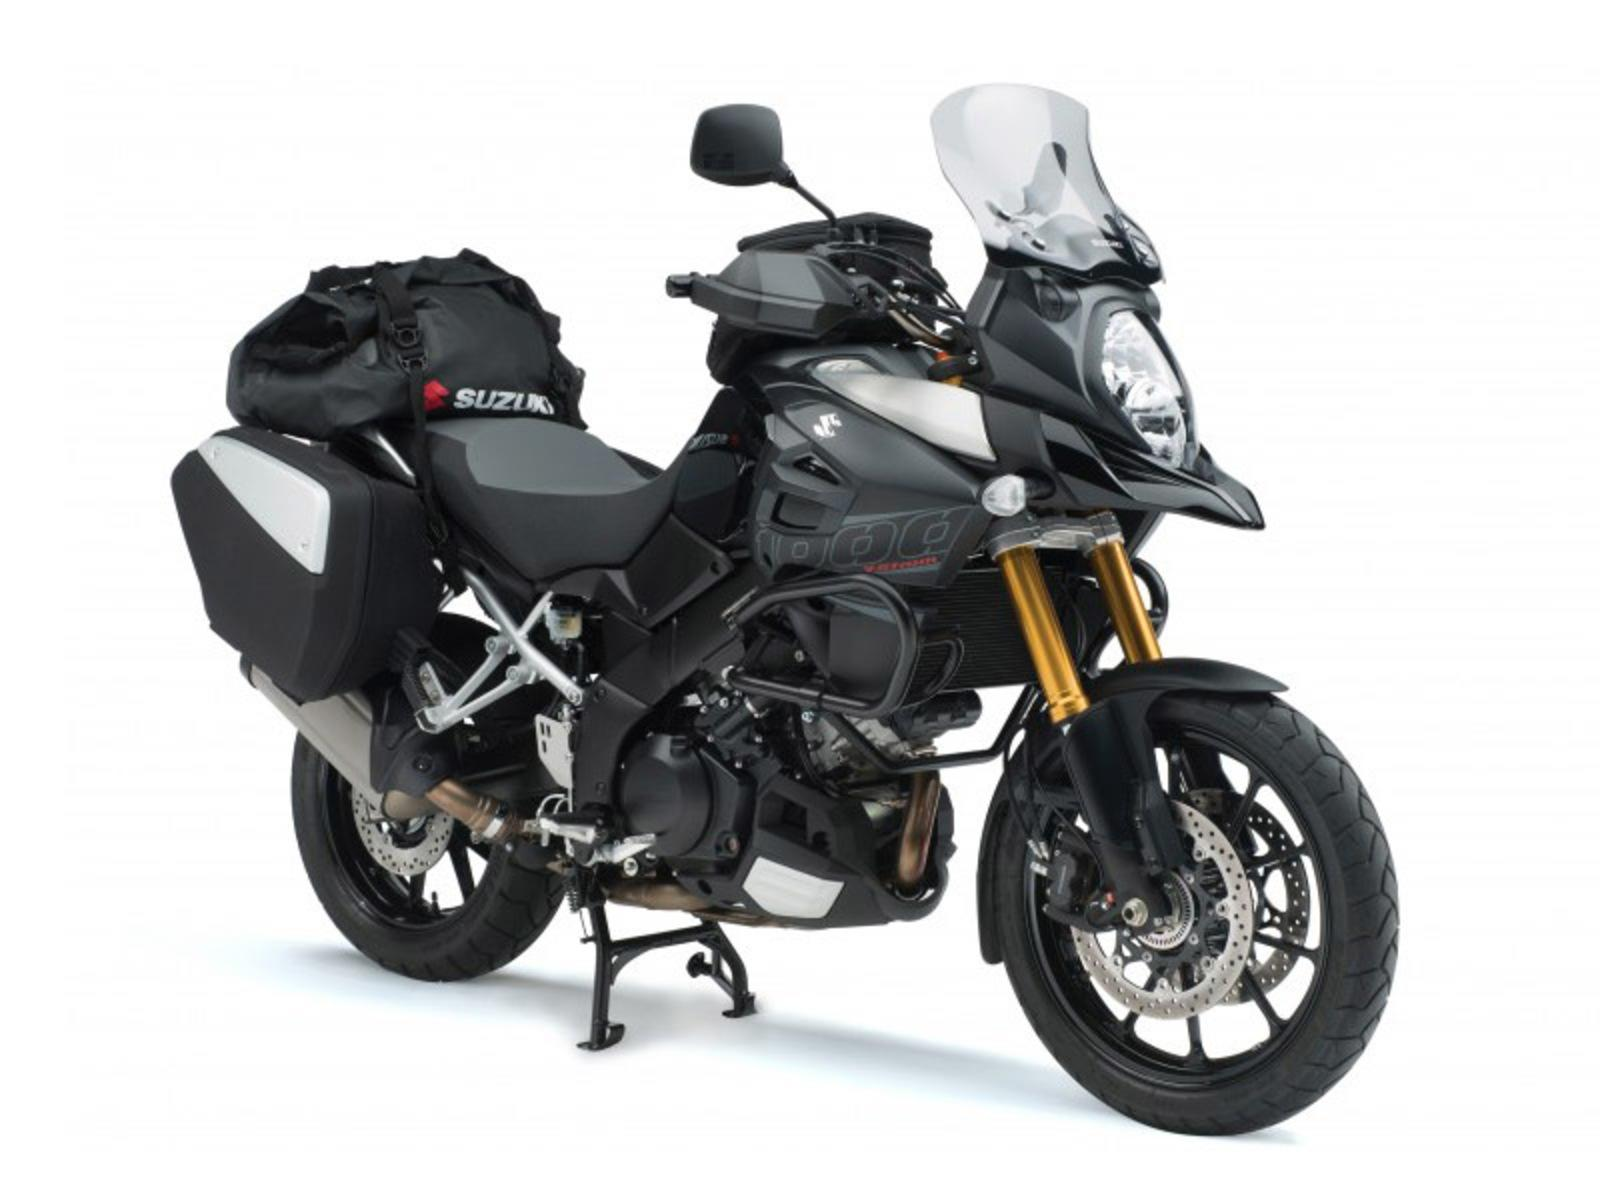 2014 suzuki v strom 1000 abs voyager review top speed. Black Bedroom Furniture Sets. Home Design Ideas